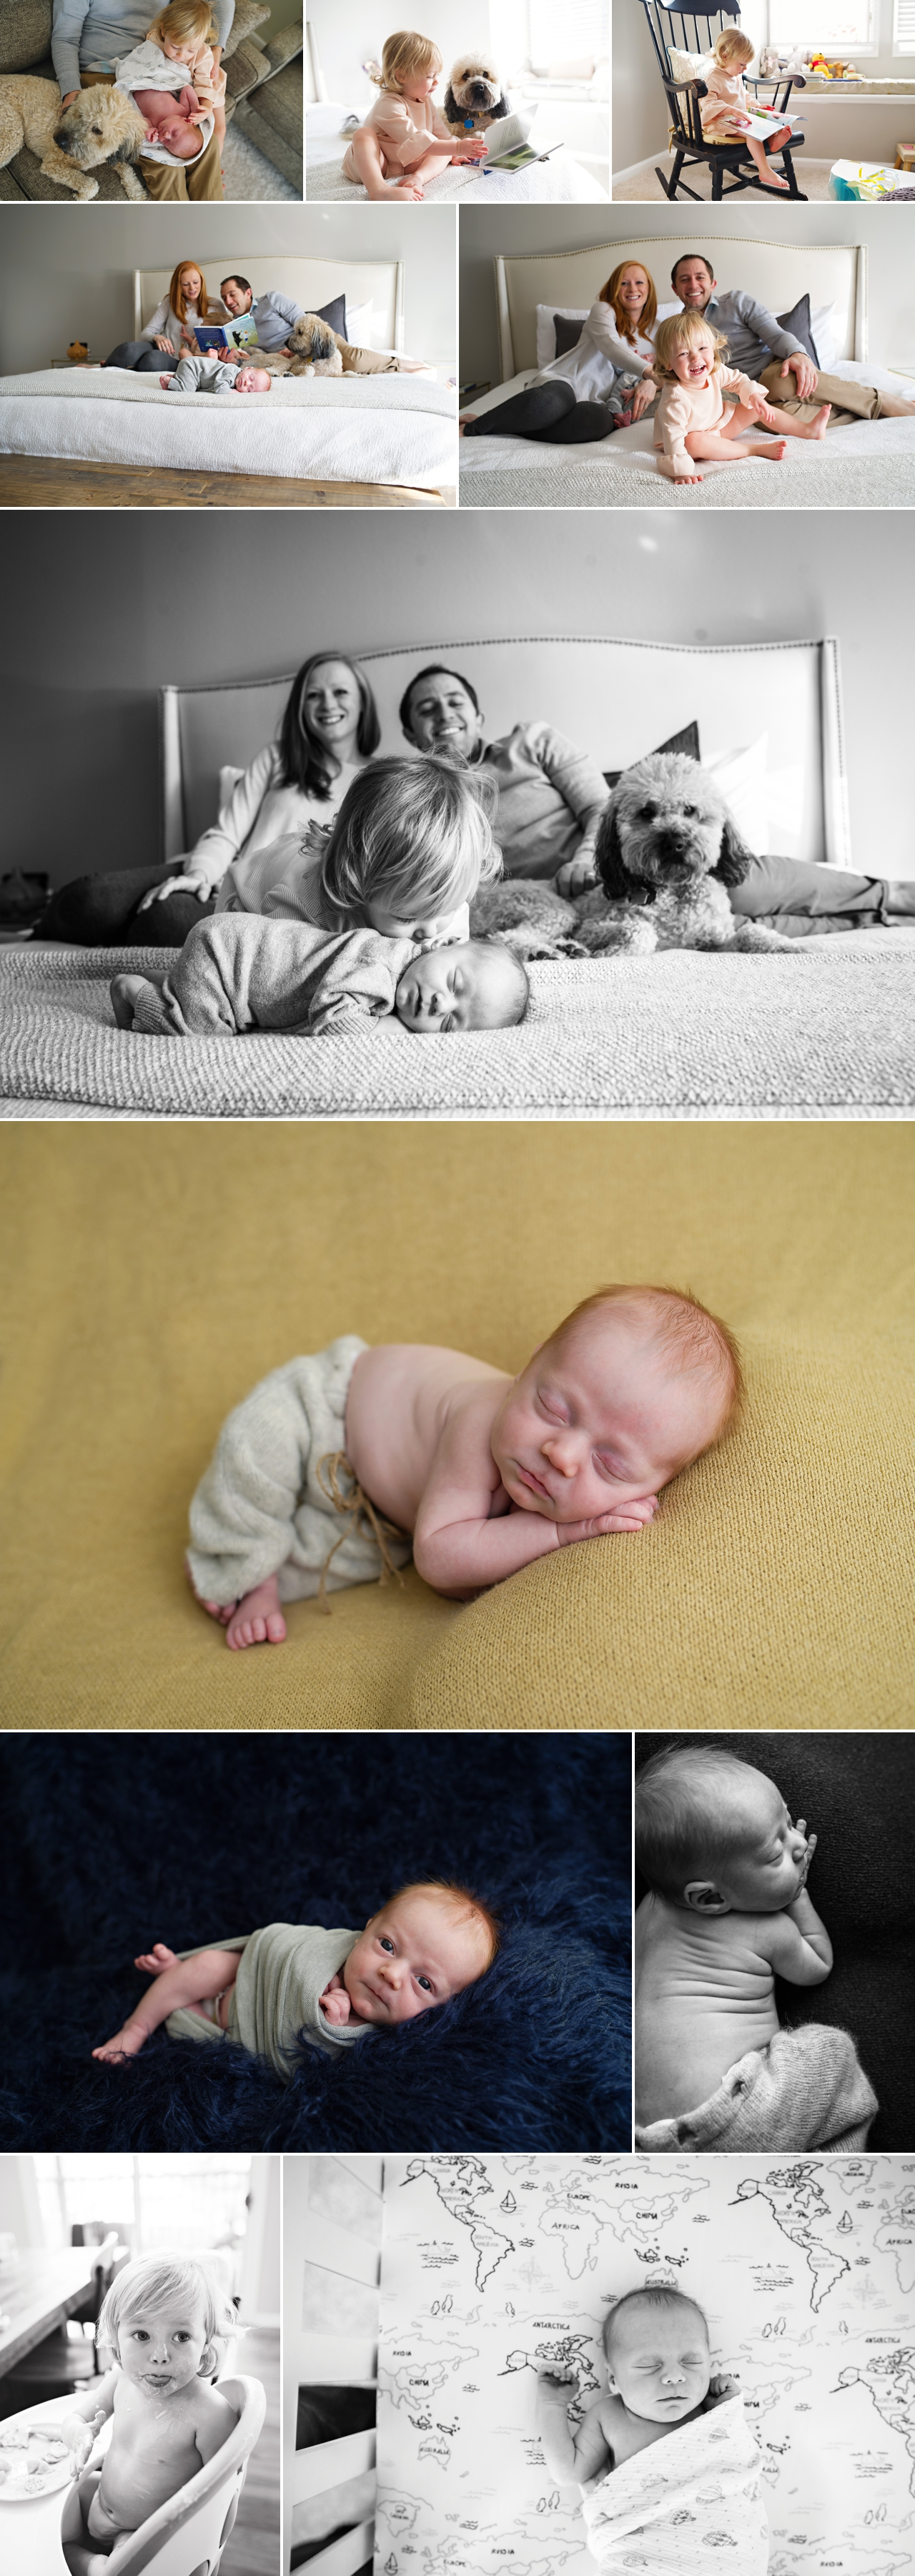 Denver-Newborn-Photographer-Baby-Boy-C-1.jpg